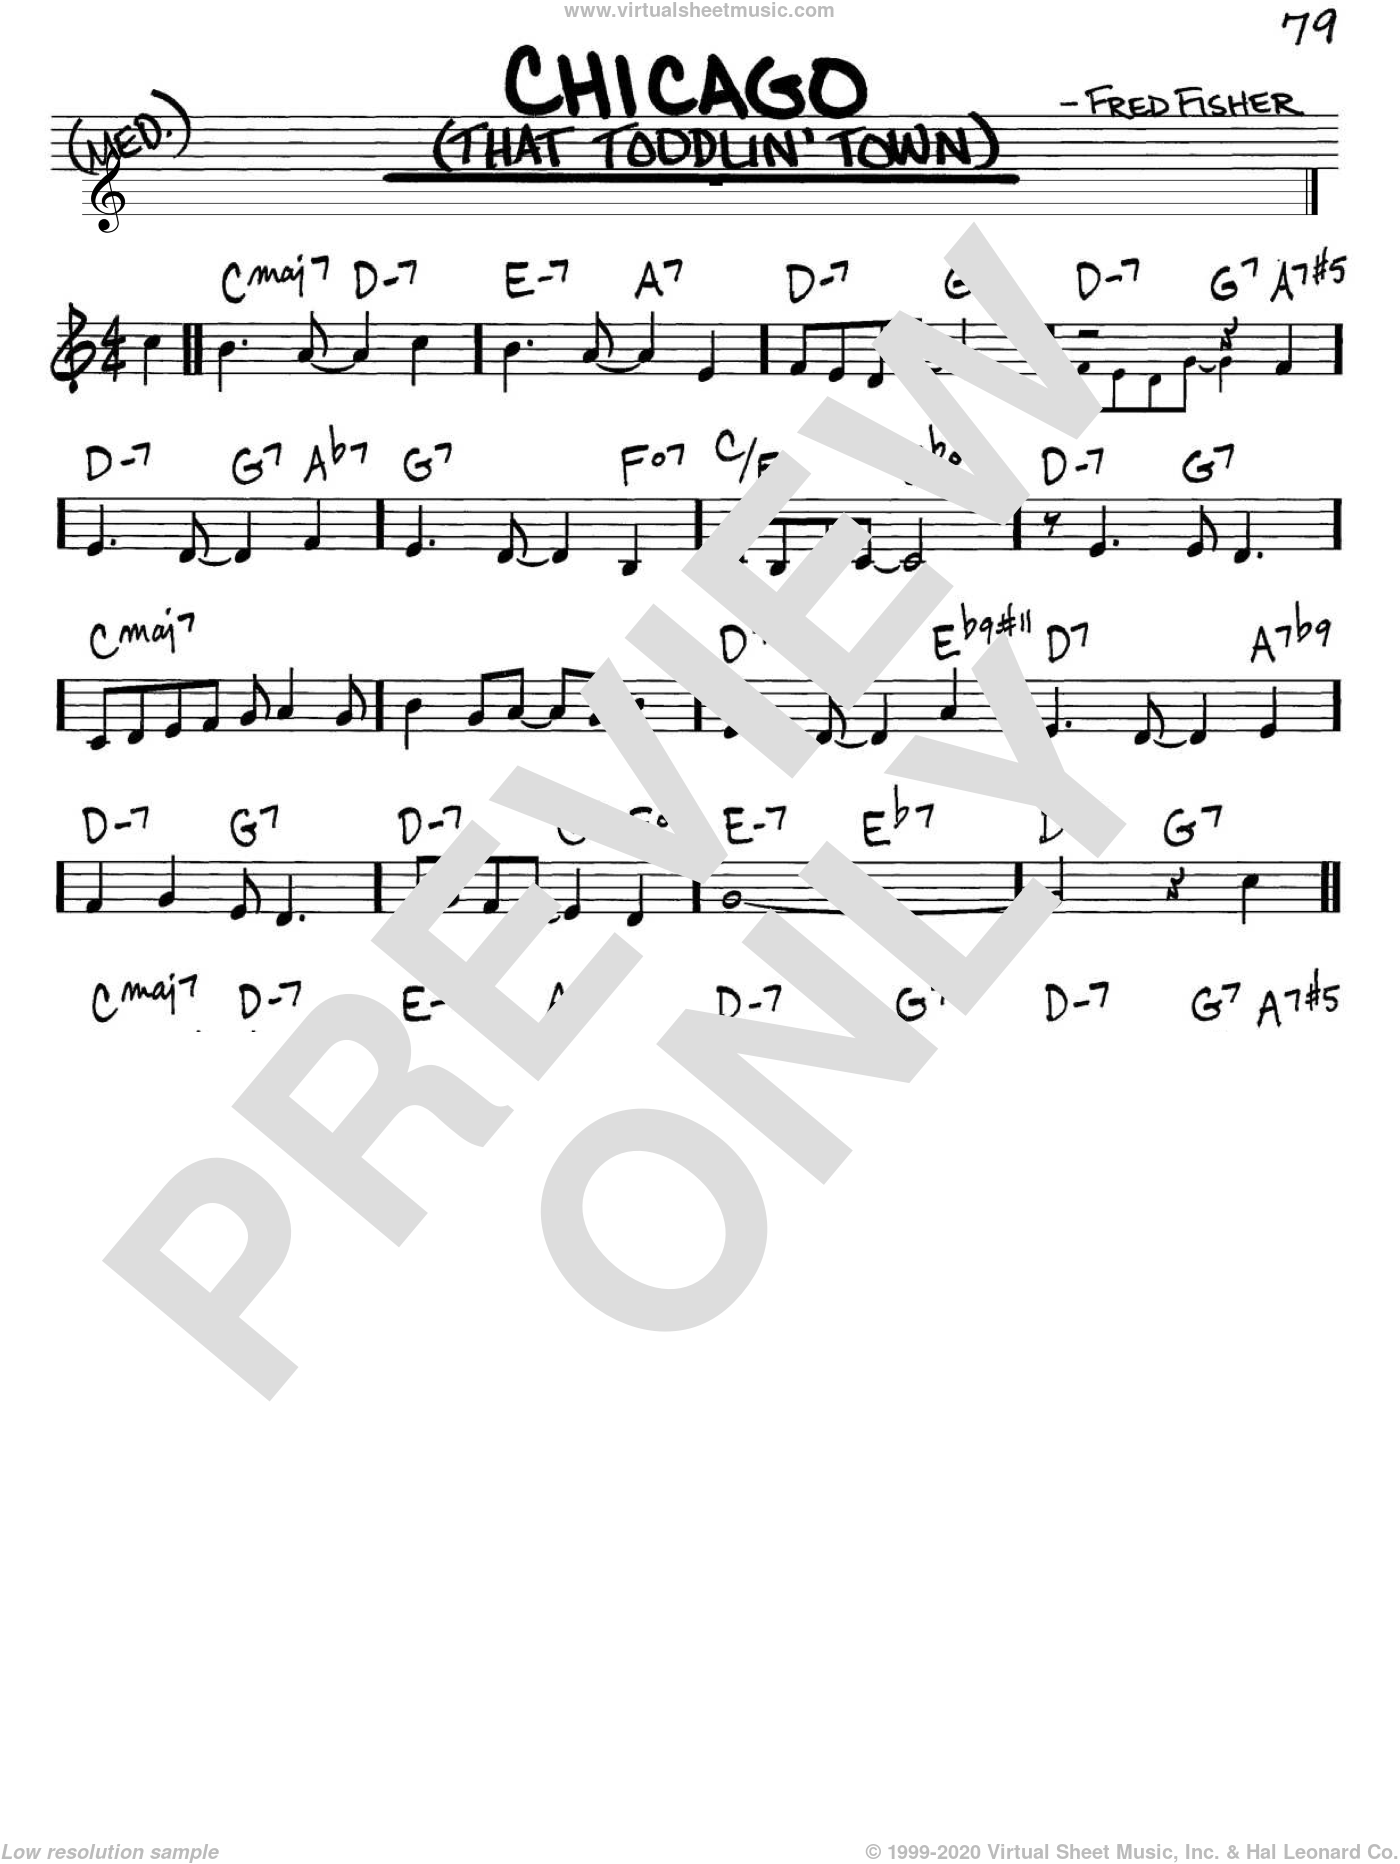 Chicago (That Toddlin' Town) sheet music for voice and other instruments (C) by Fred Fisher